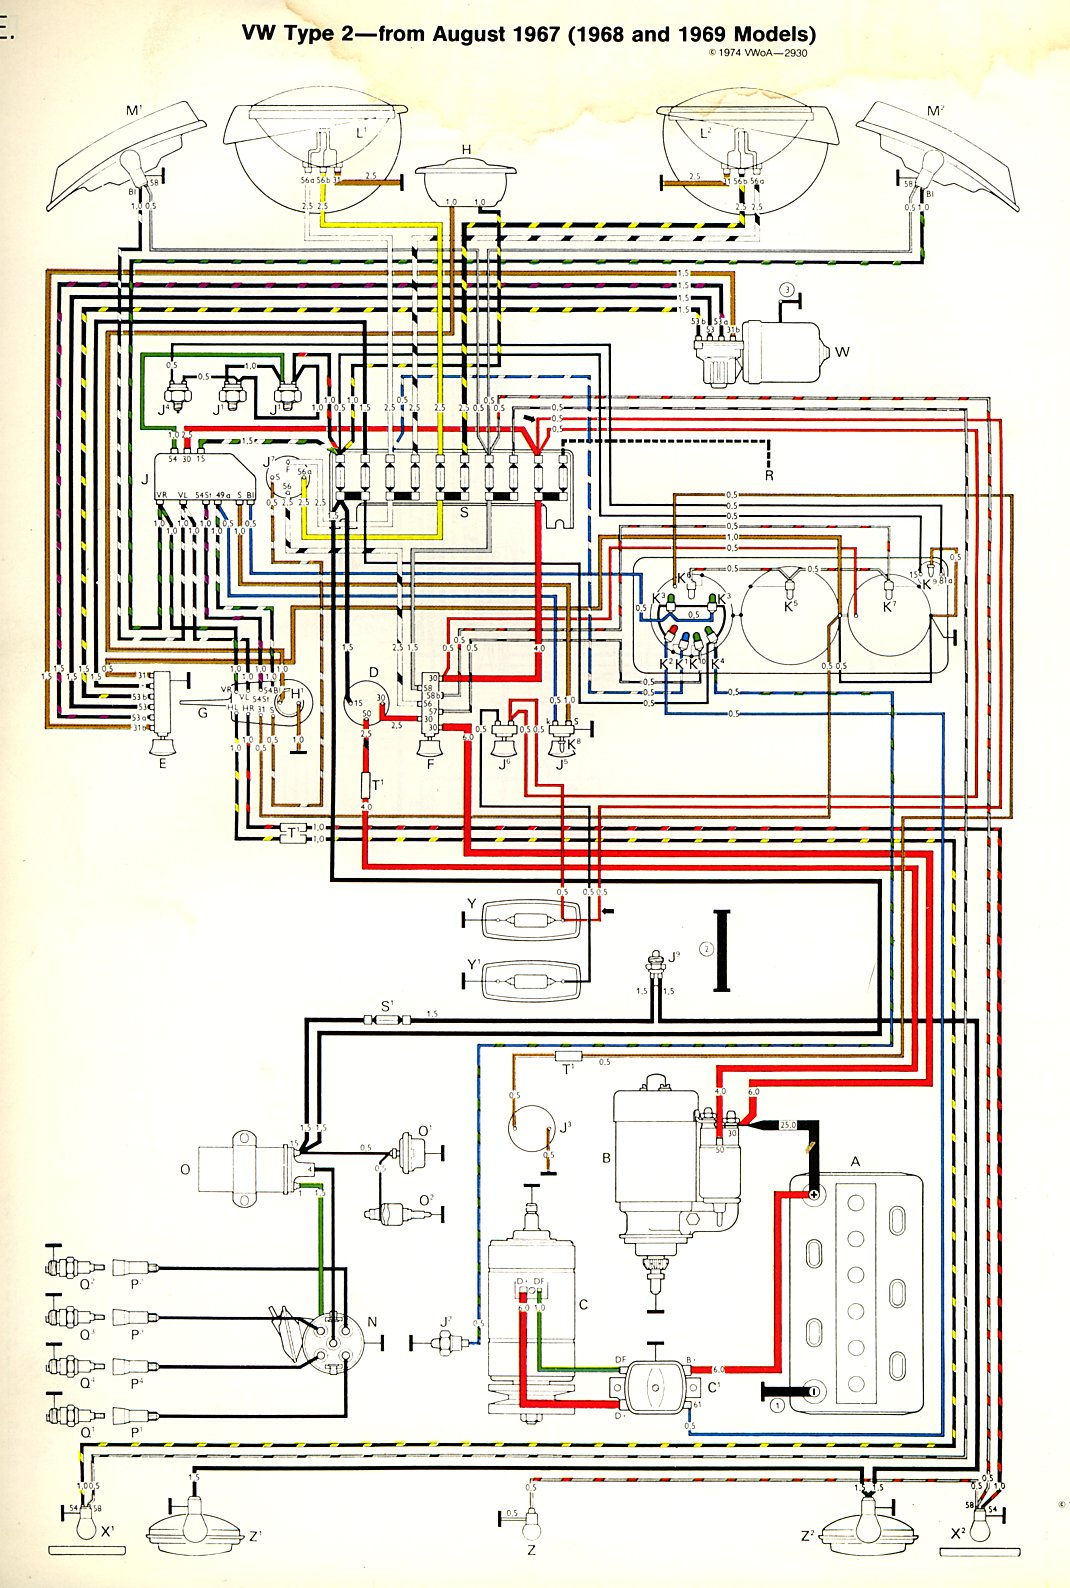 thesamba com type 2 wiring diagrams 1968 to vin 2x8098285 unfused schematic highlight